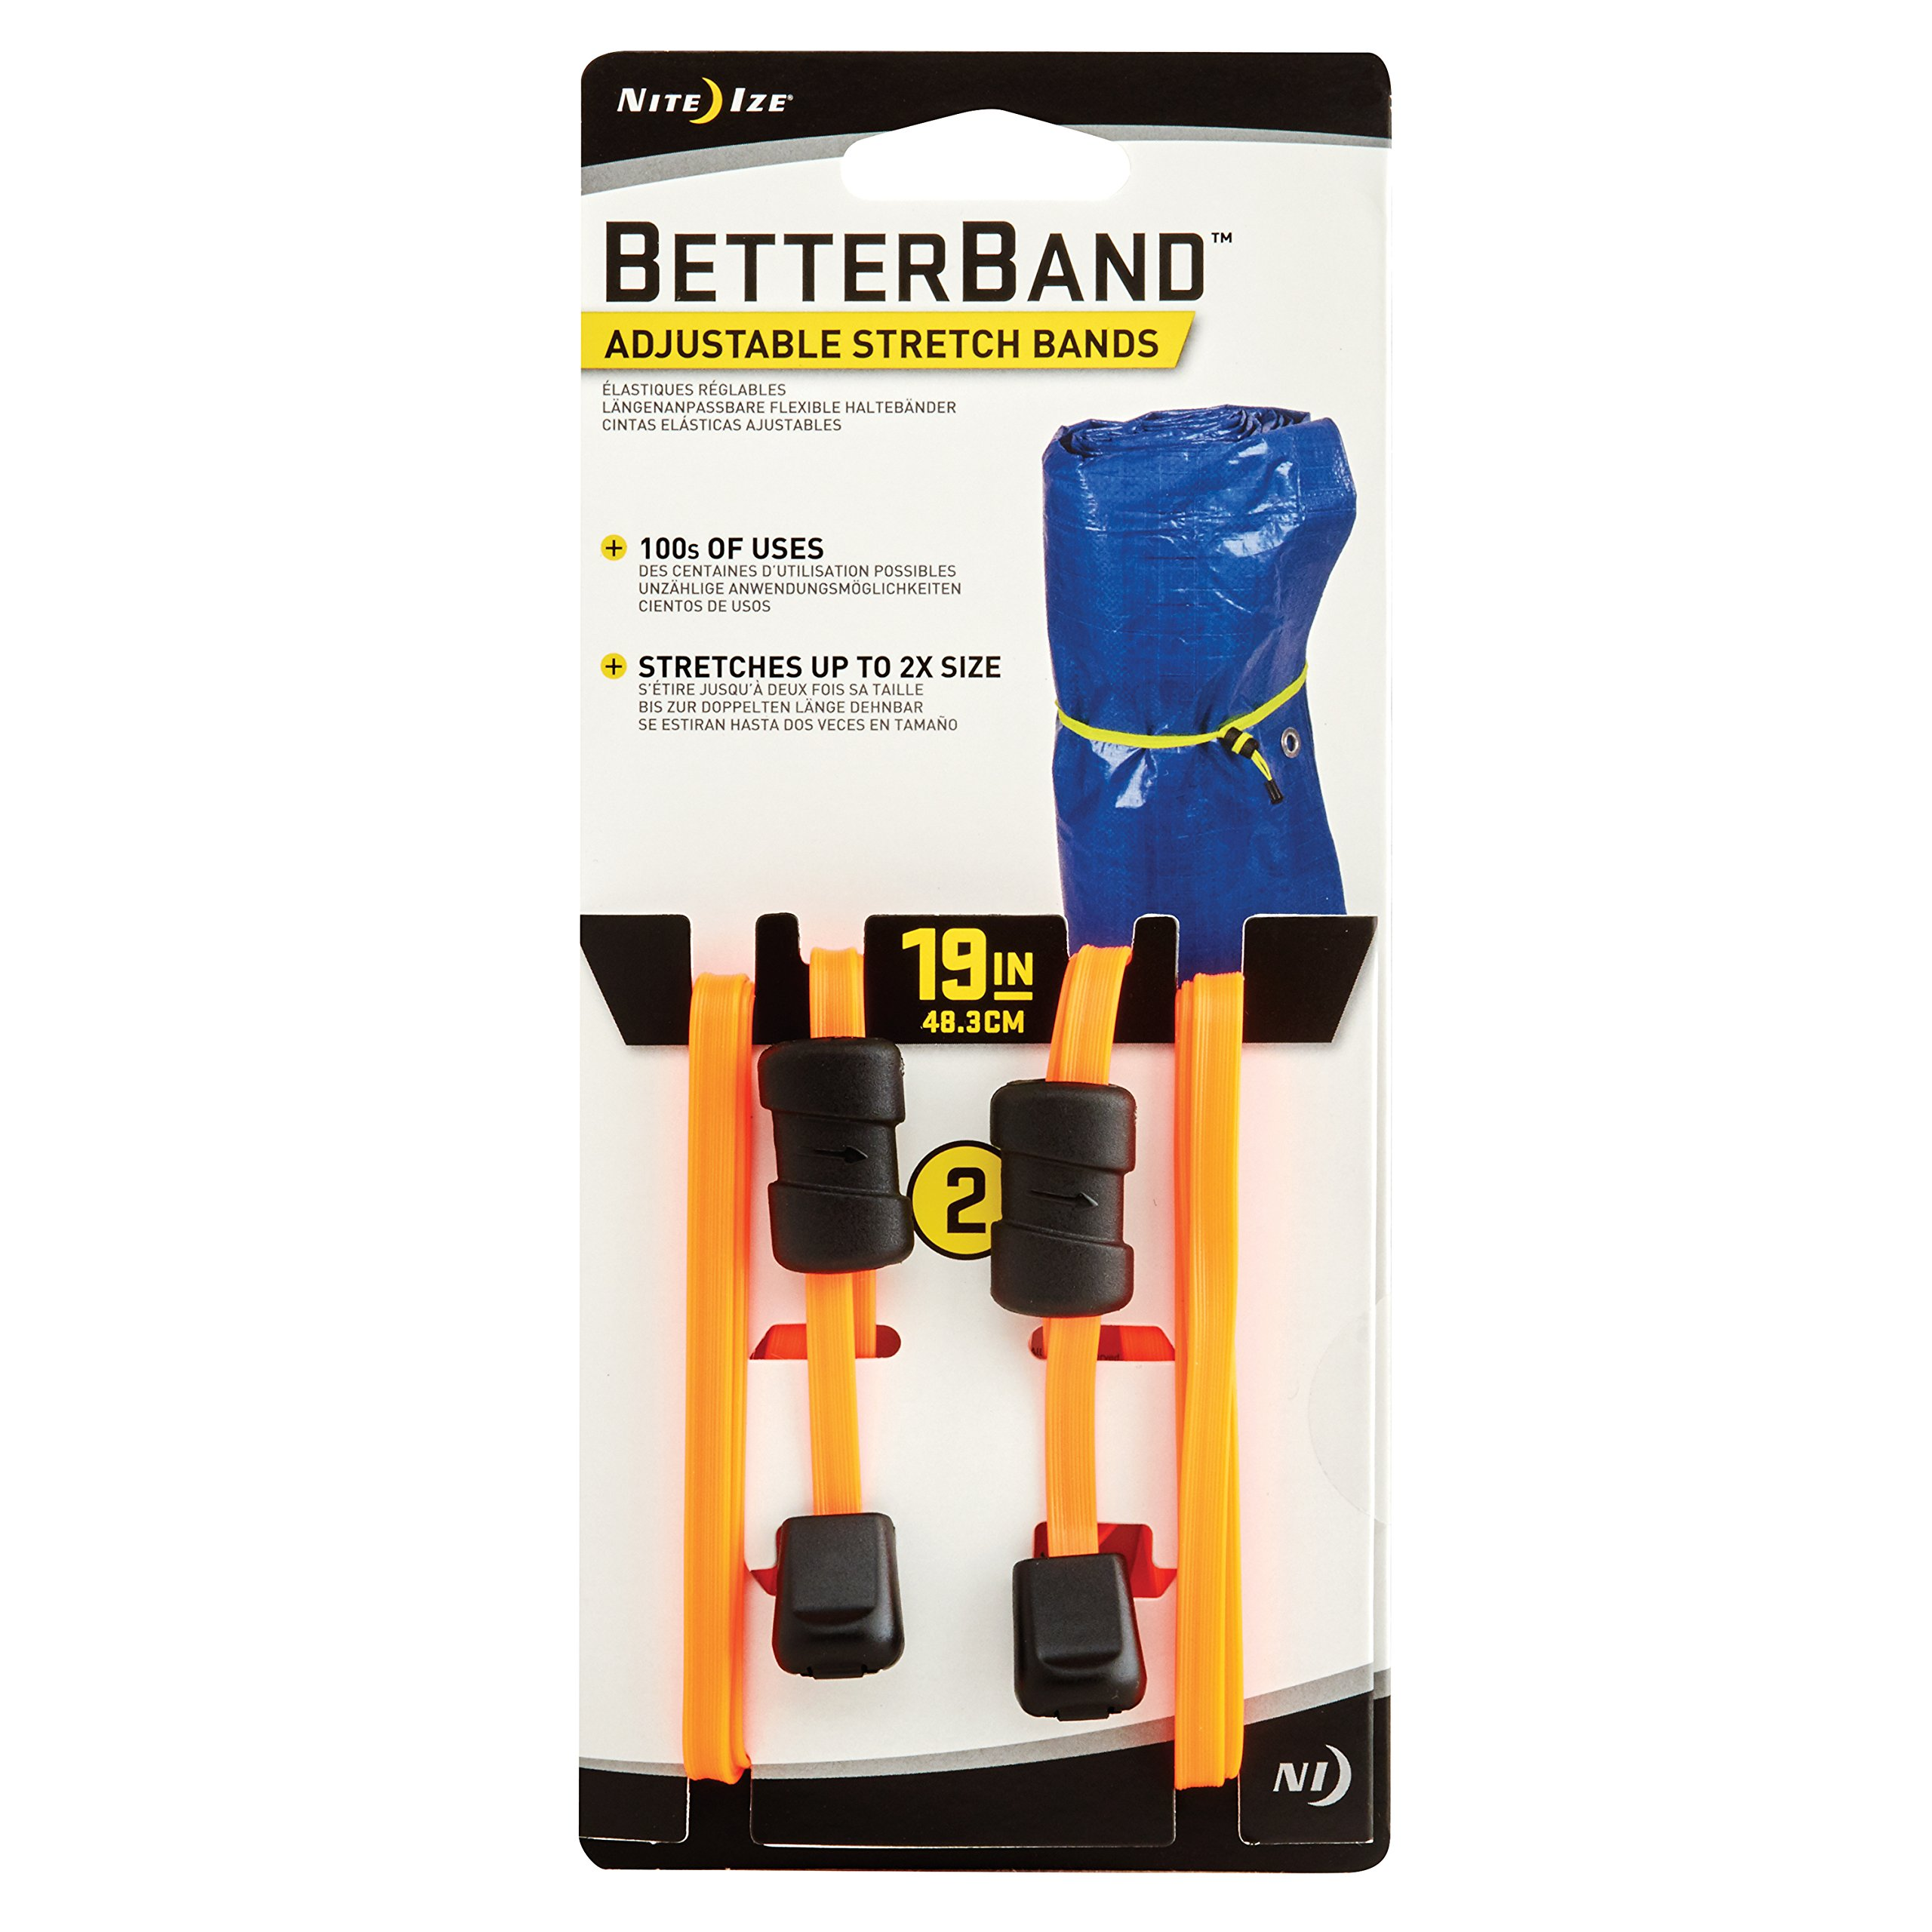 Nite Ize BetterBand, Adjustable Stretch Band With Cord Lock, 19-Inch, Bright Orange